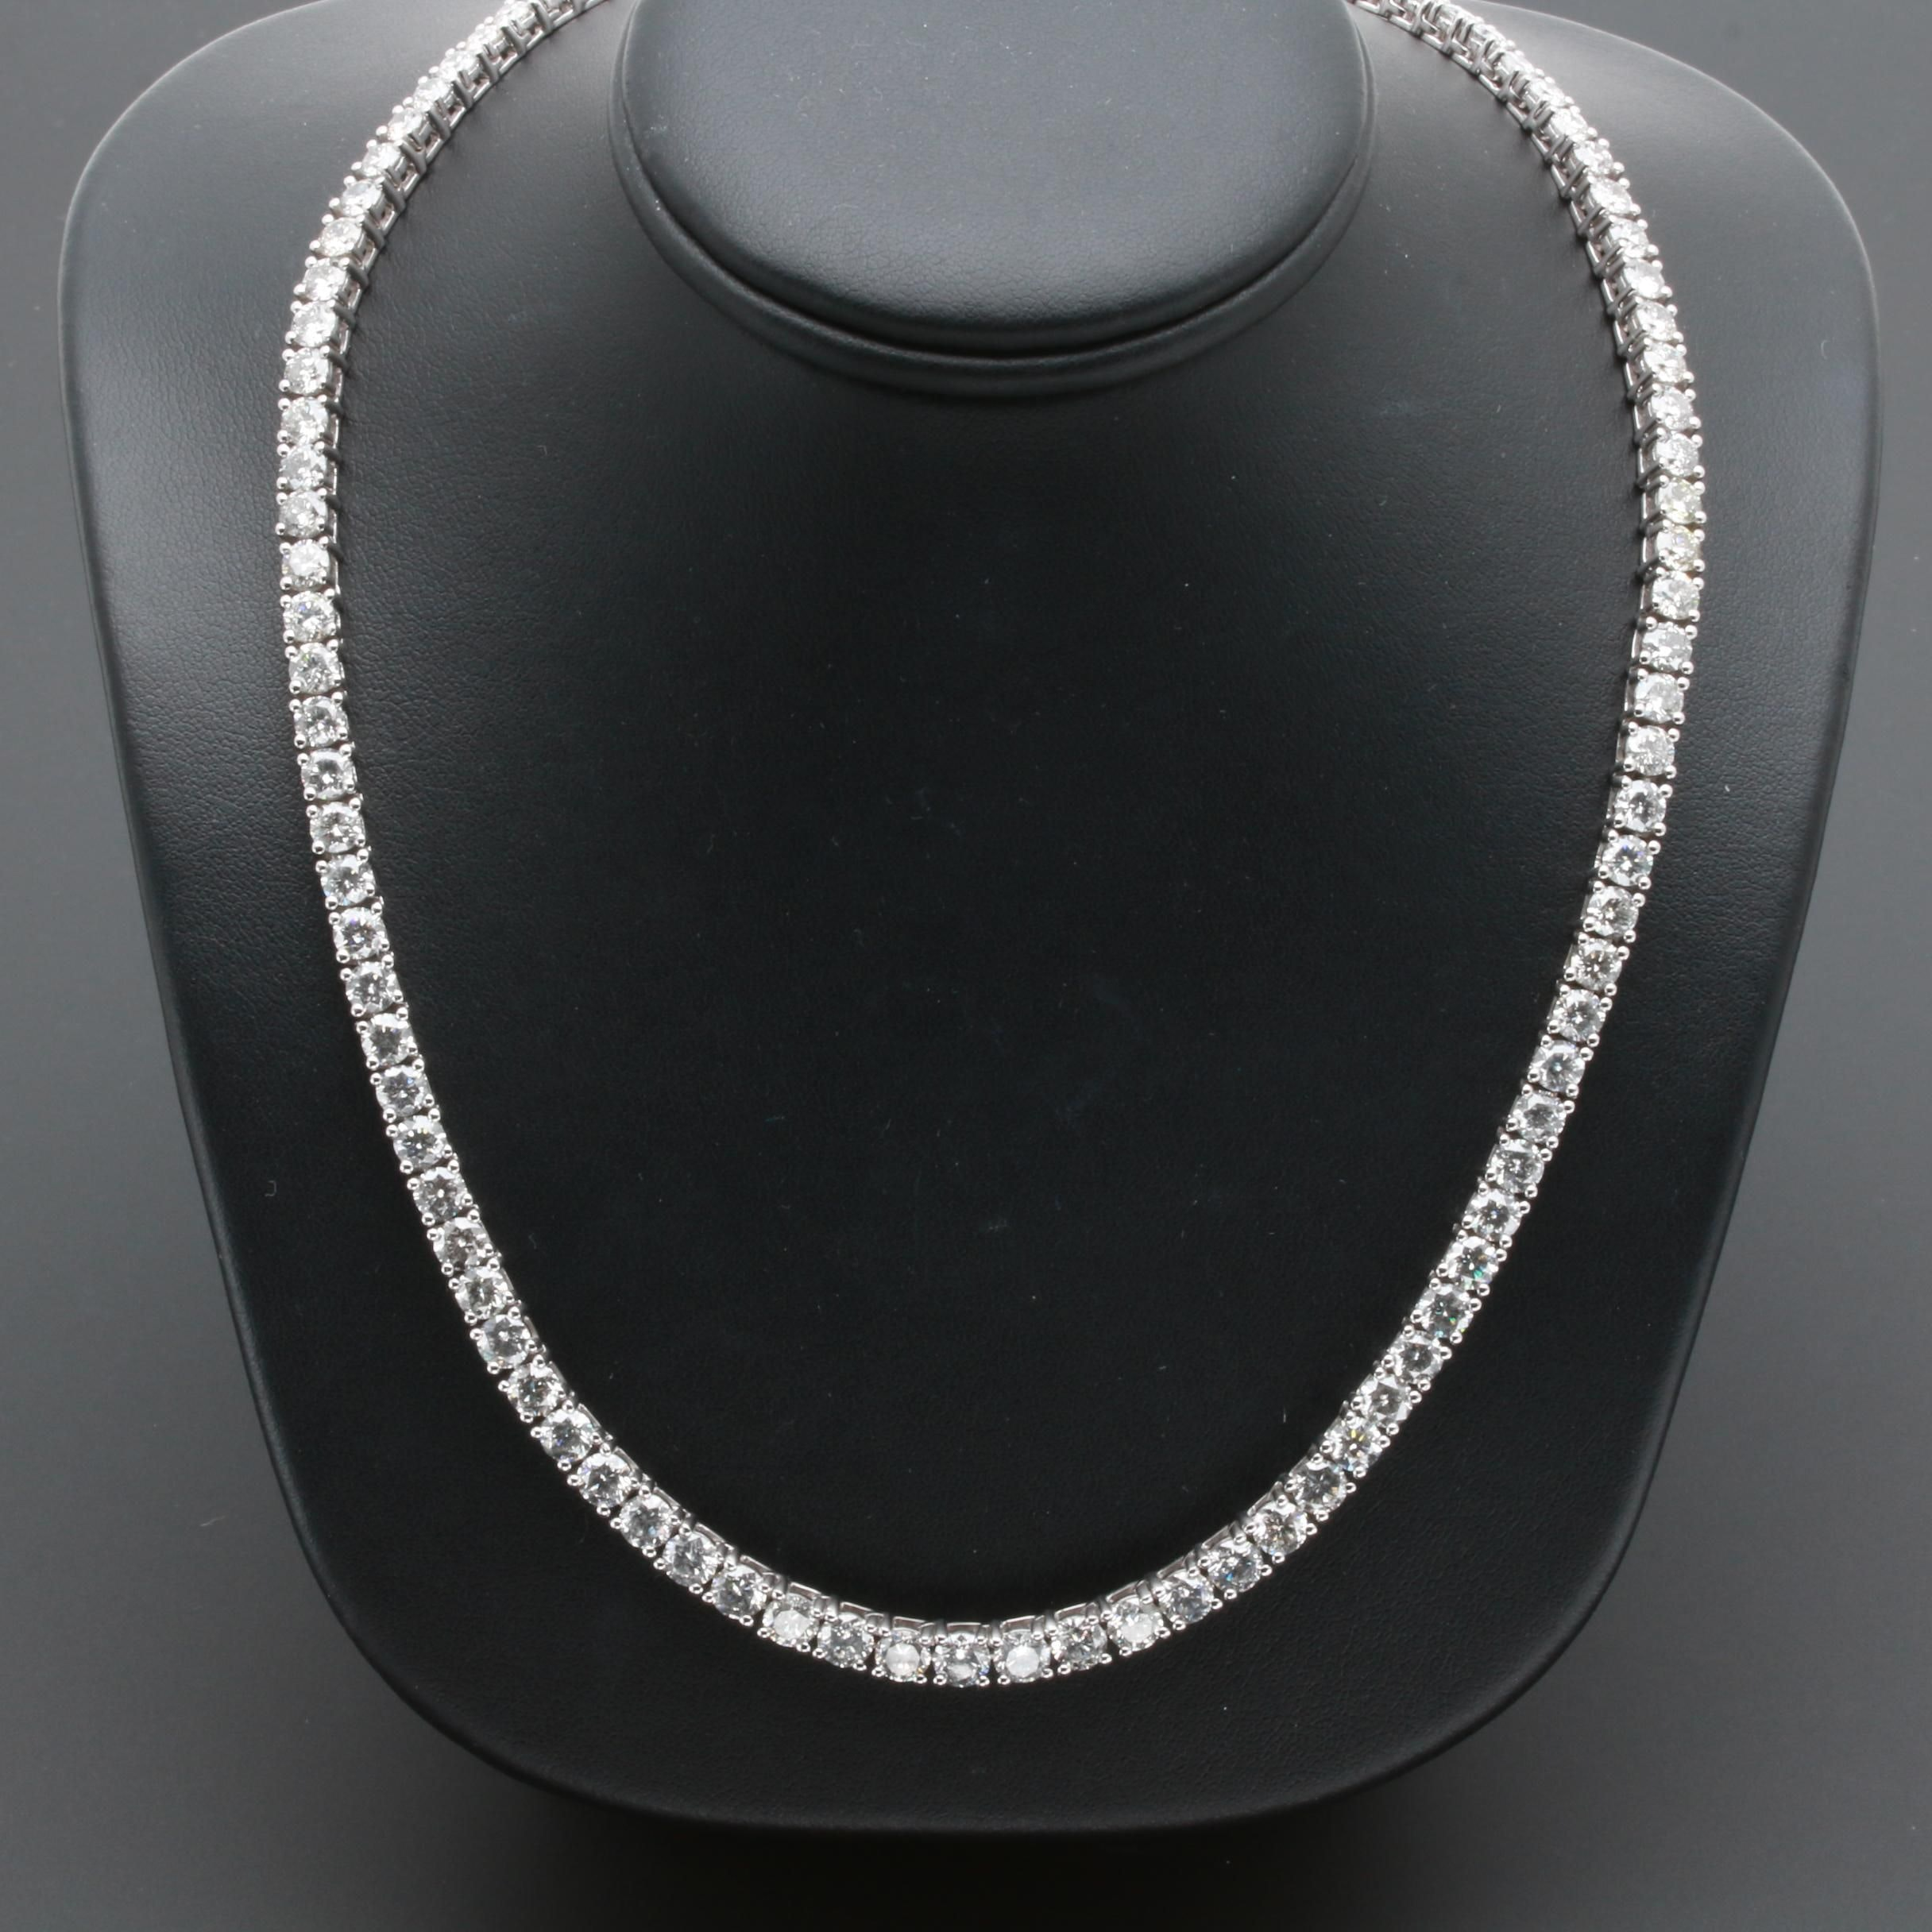 14K White Gold 30.53 CTW Diamond Link Necklace